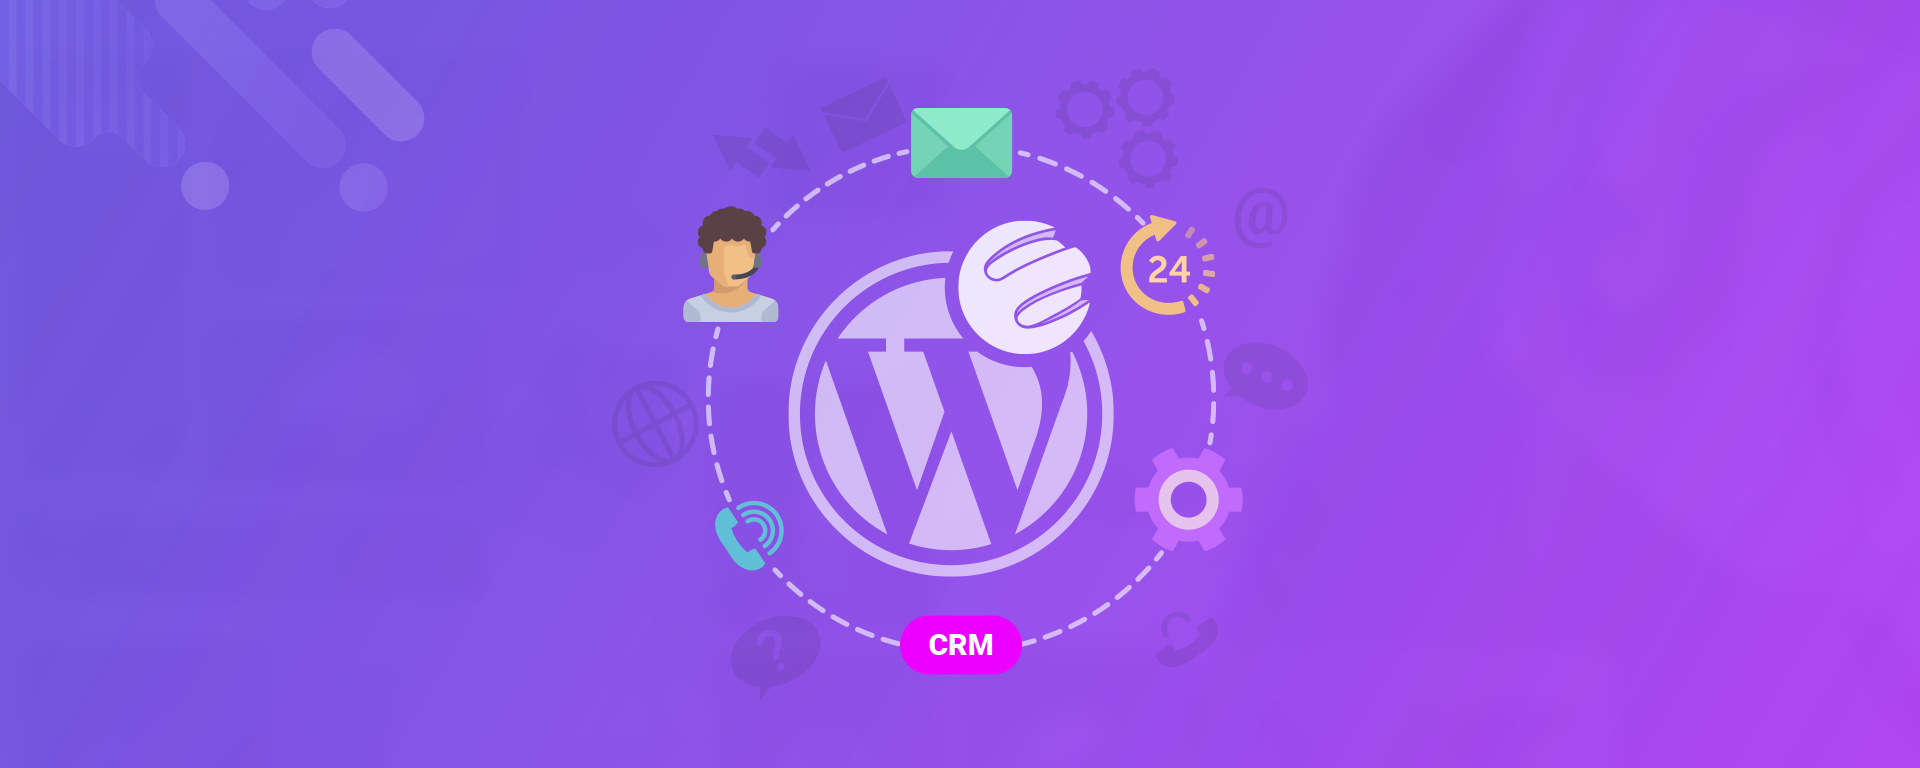 WordPress CRM plugin  crm implementation process